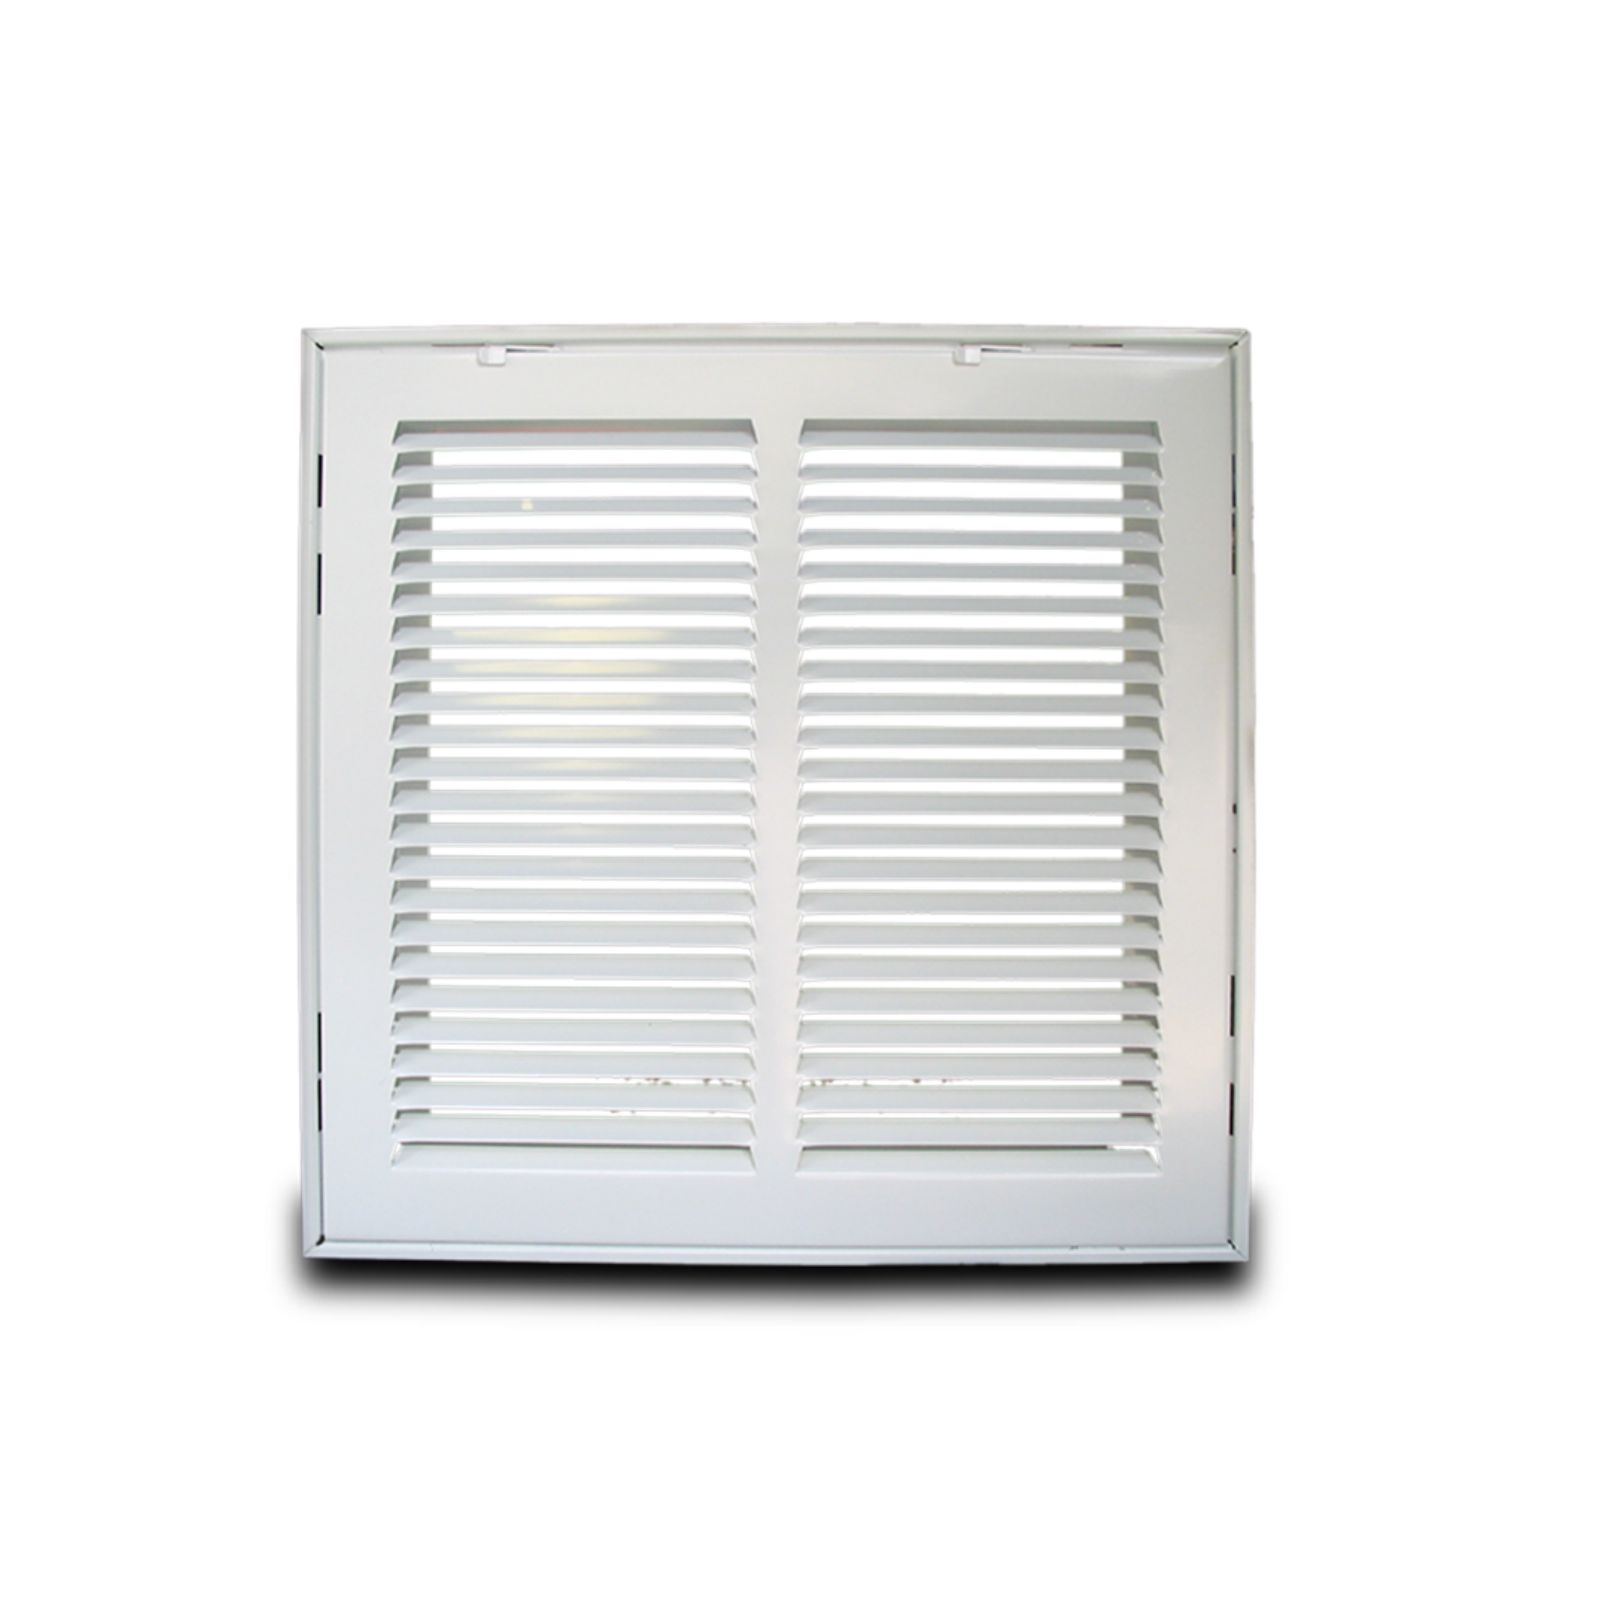 "Metal-Fab MFRFG2414W - Metal Fab Return Filter Grille, White,  24"" X 14"""